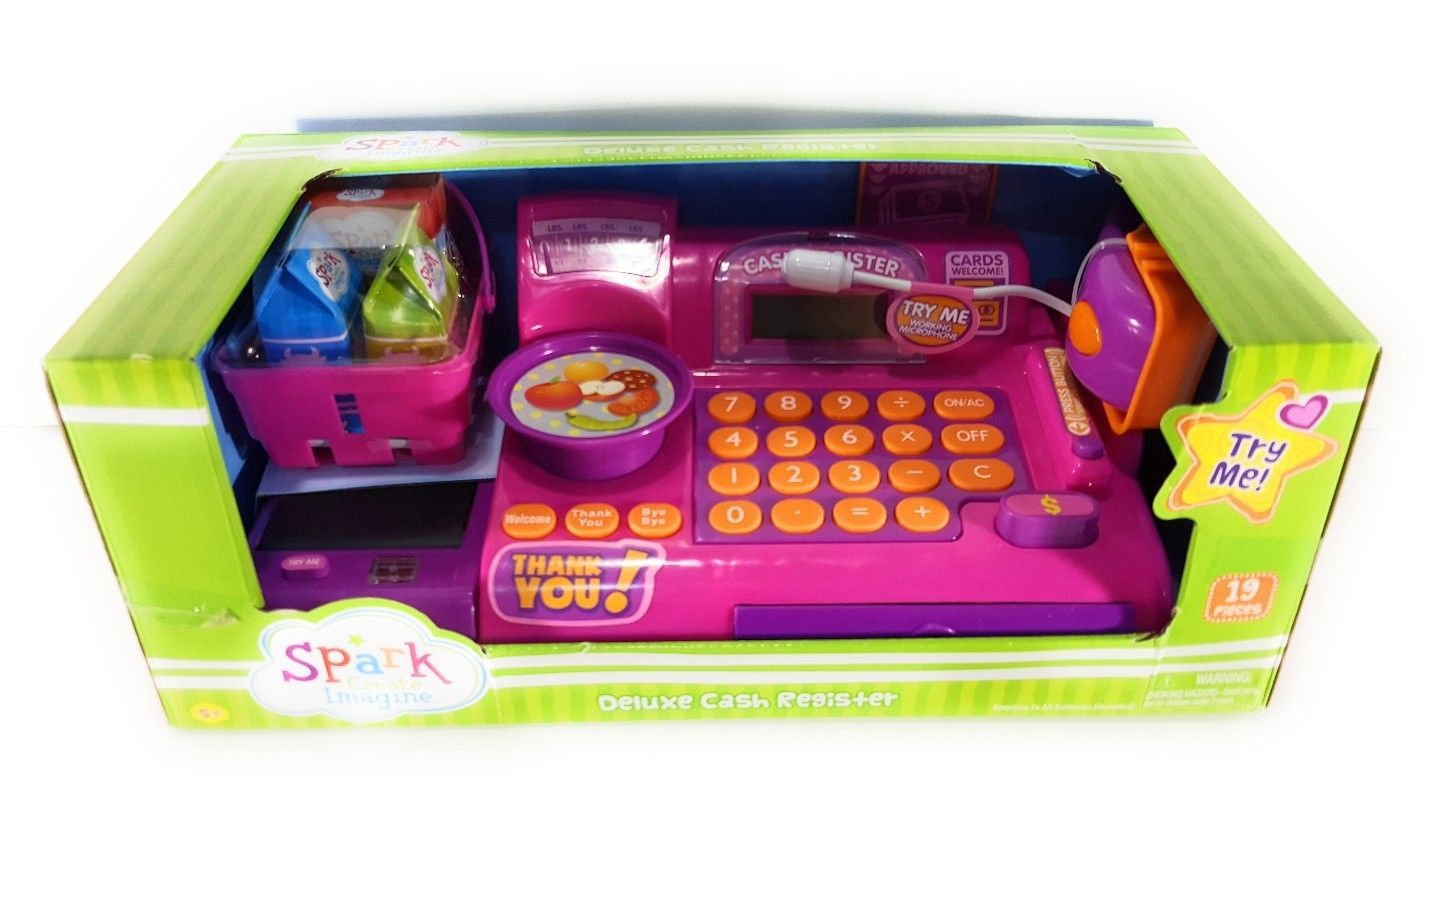 Toy Cash Register by SPARK CREATE IMAGINE Sound Mic and Belt Educational Kids for sale  USA